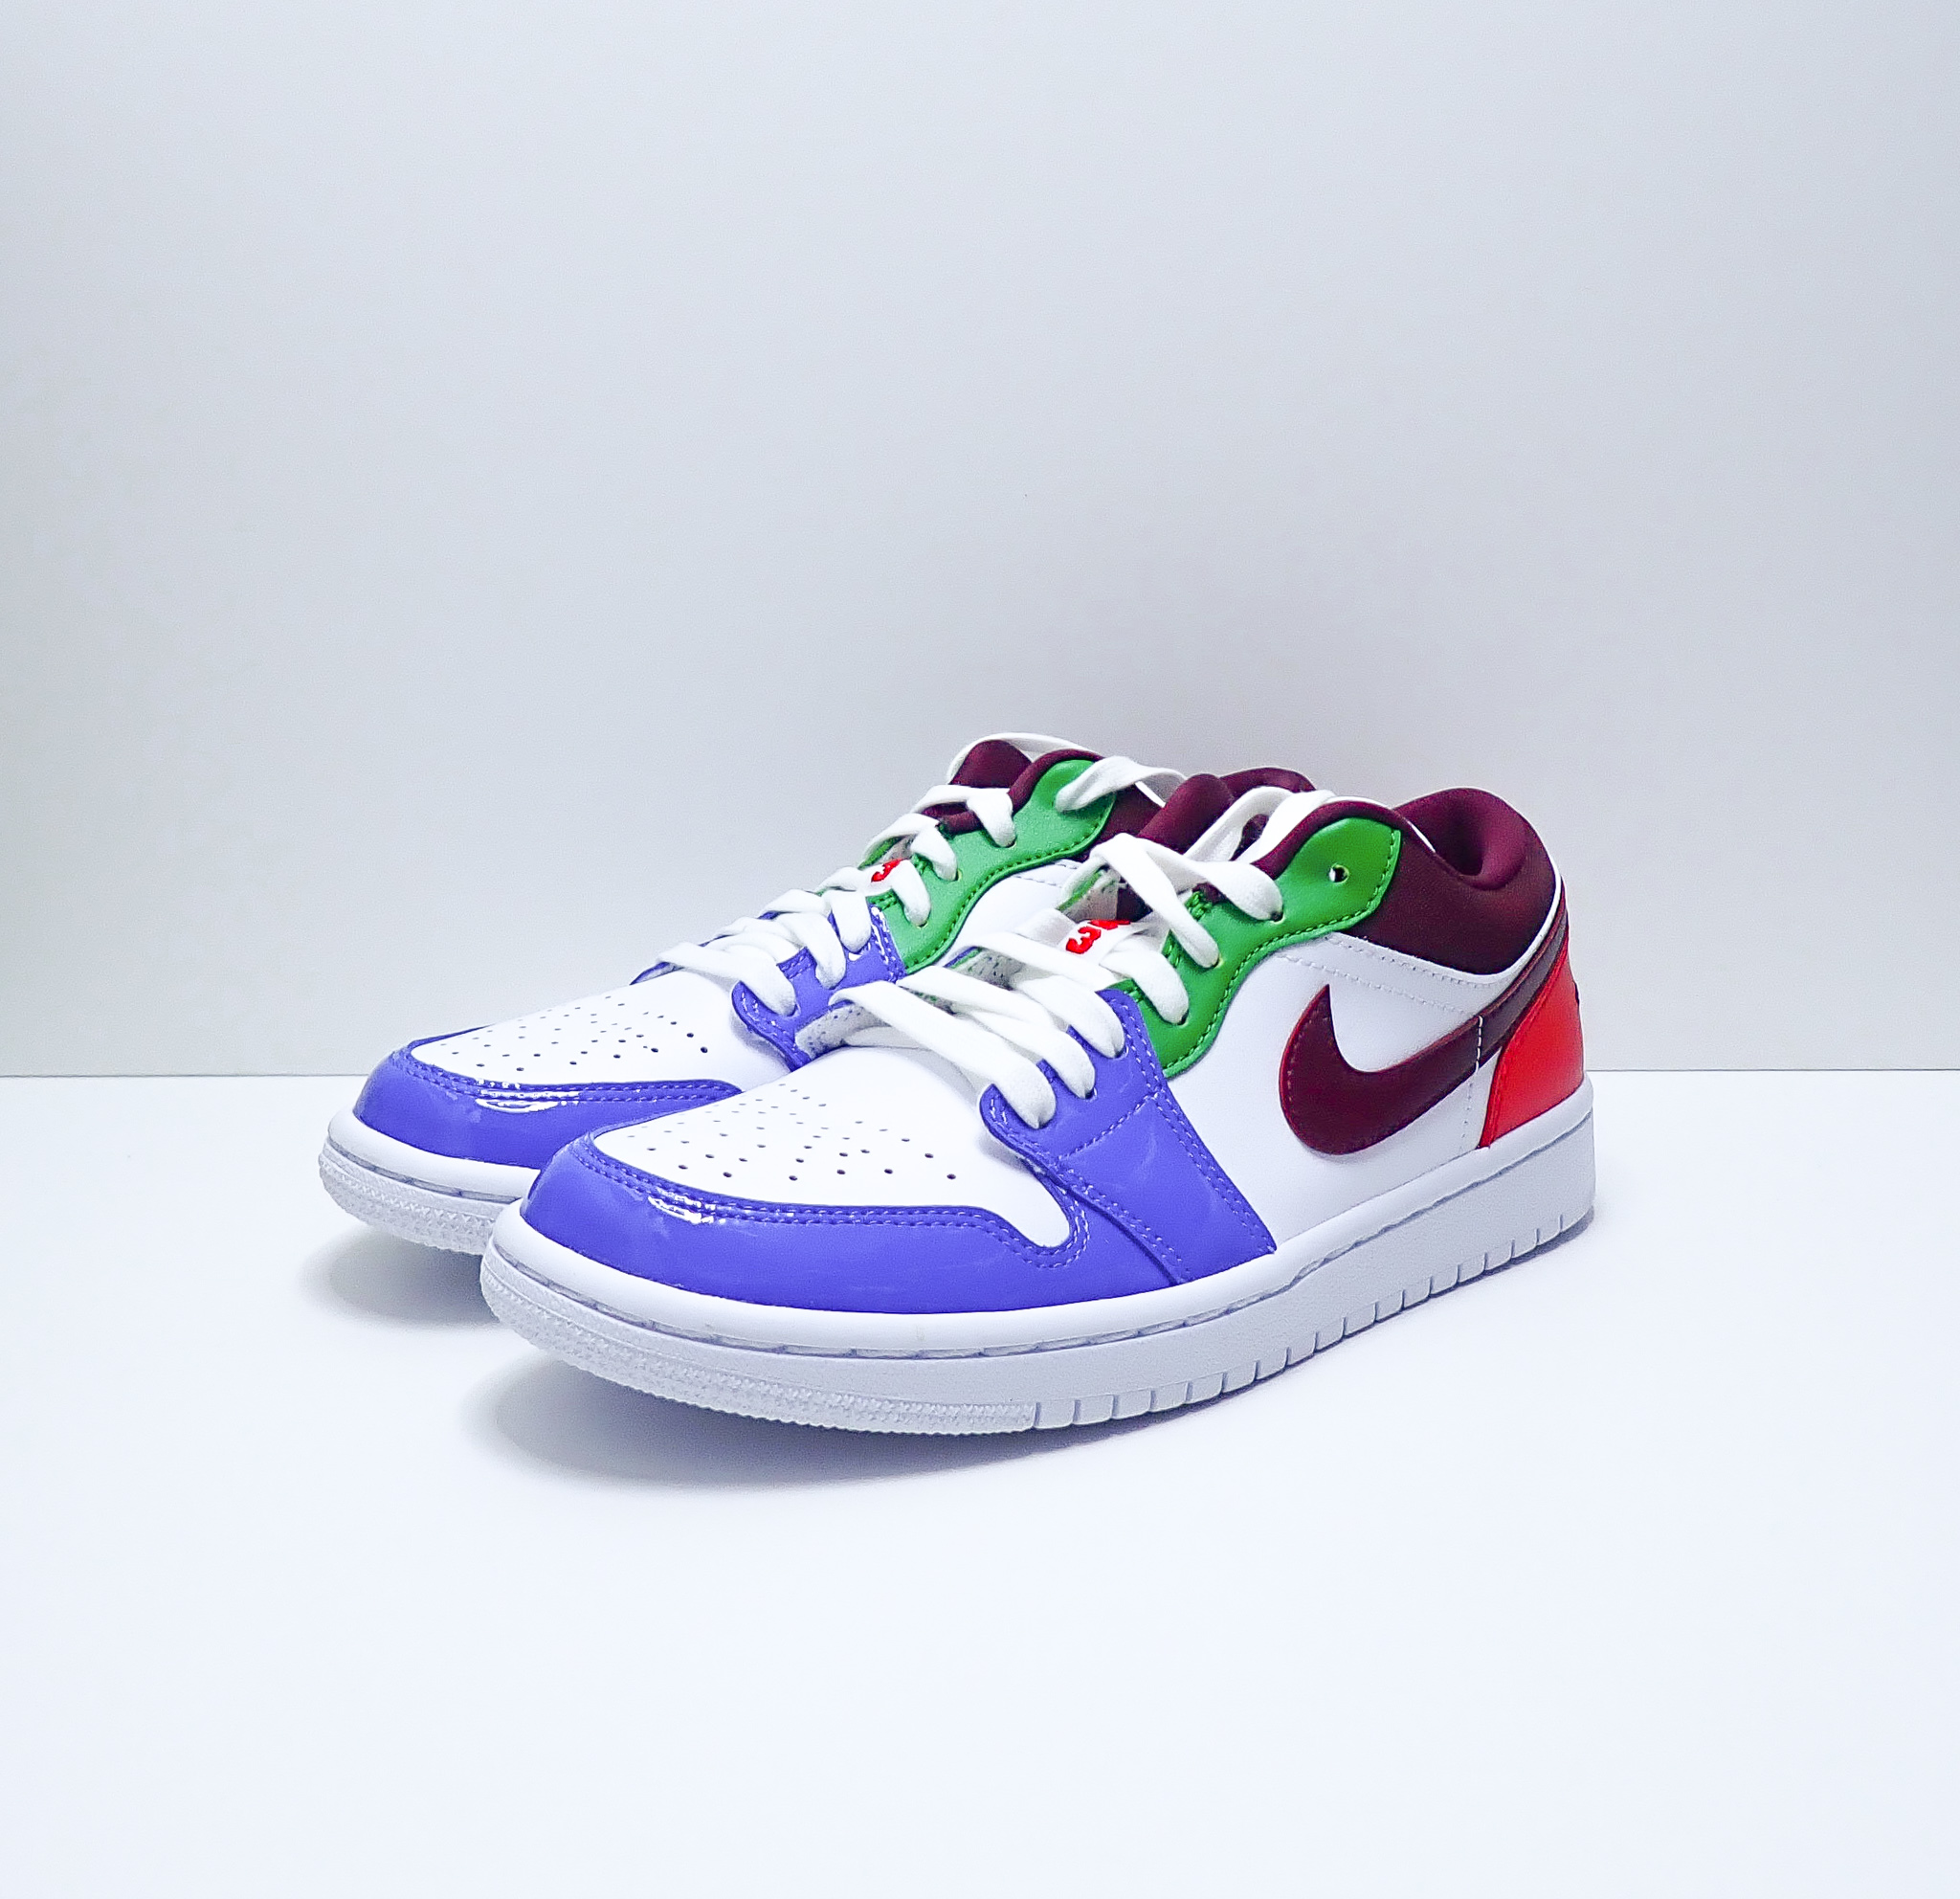 Jordan 1 Low W Multi Color